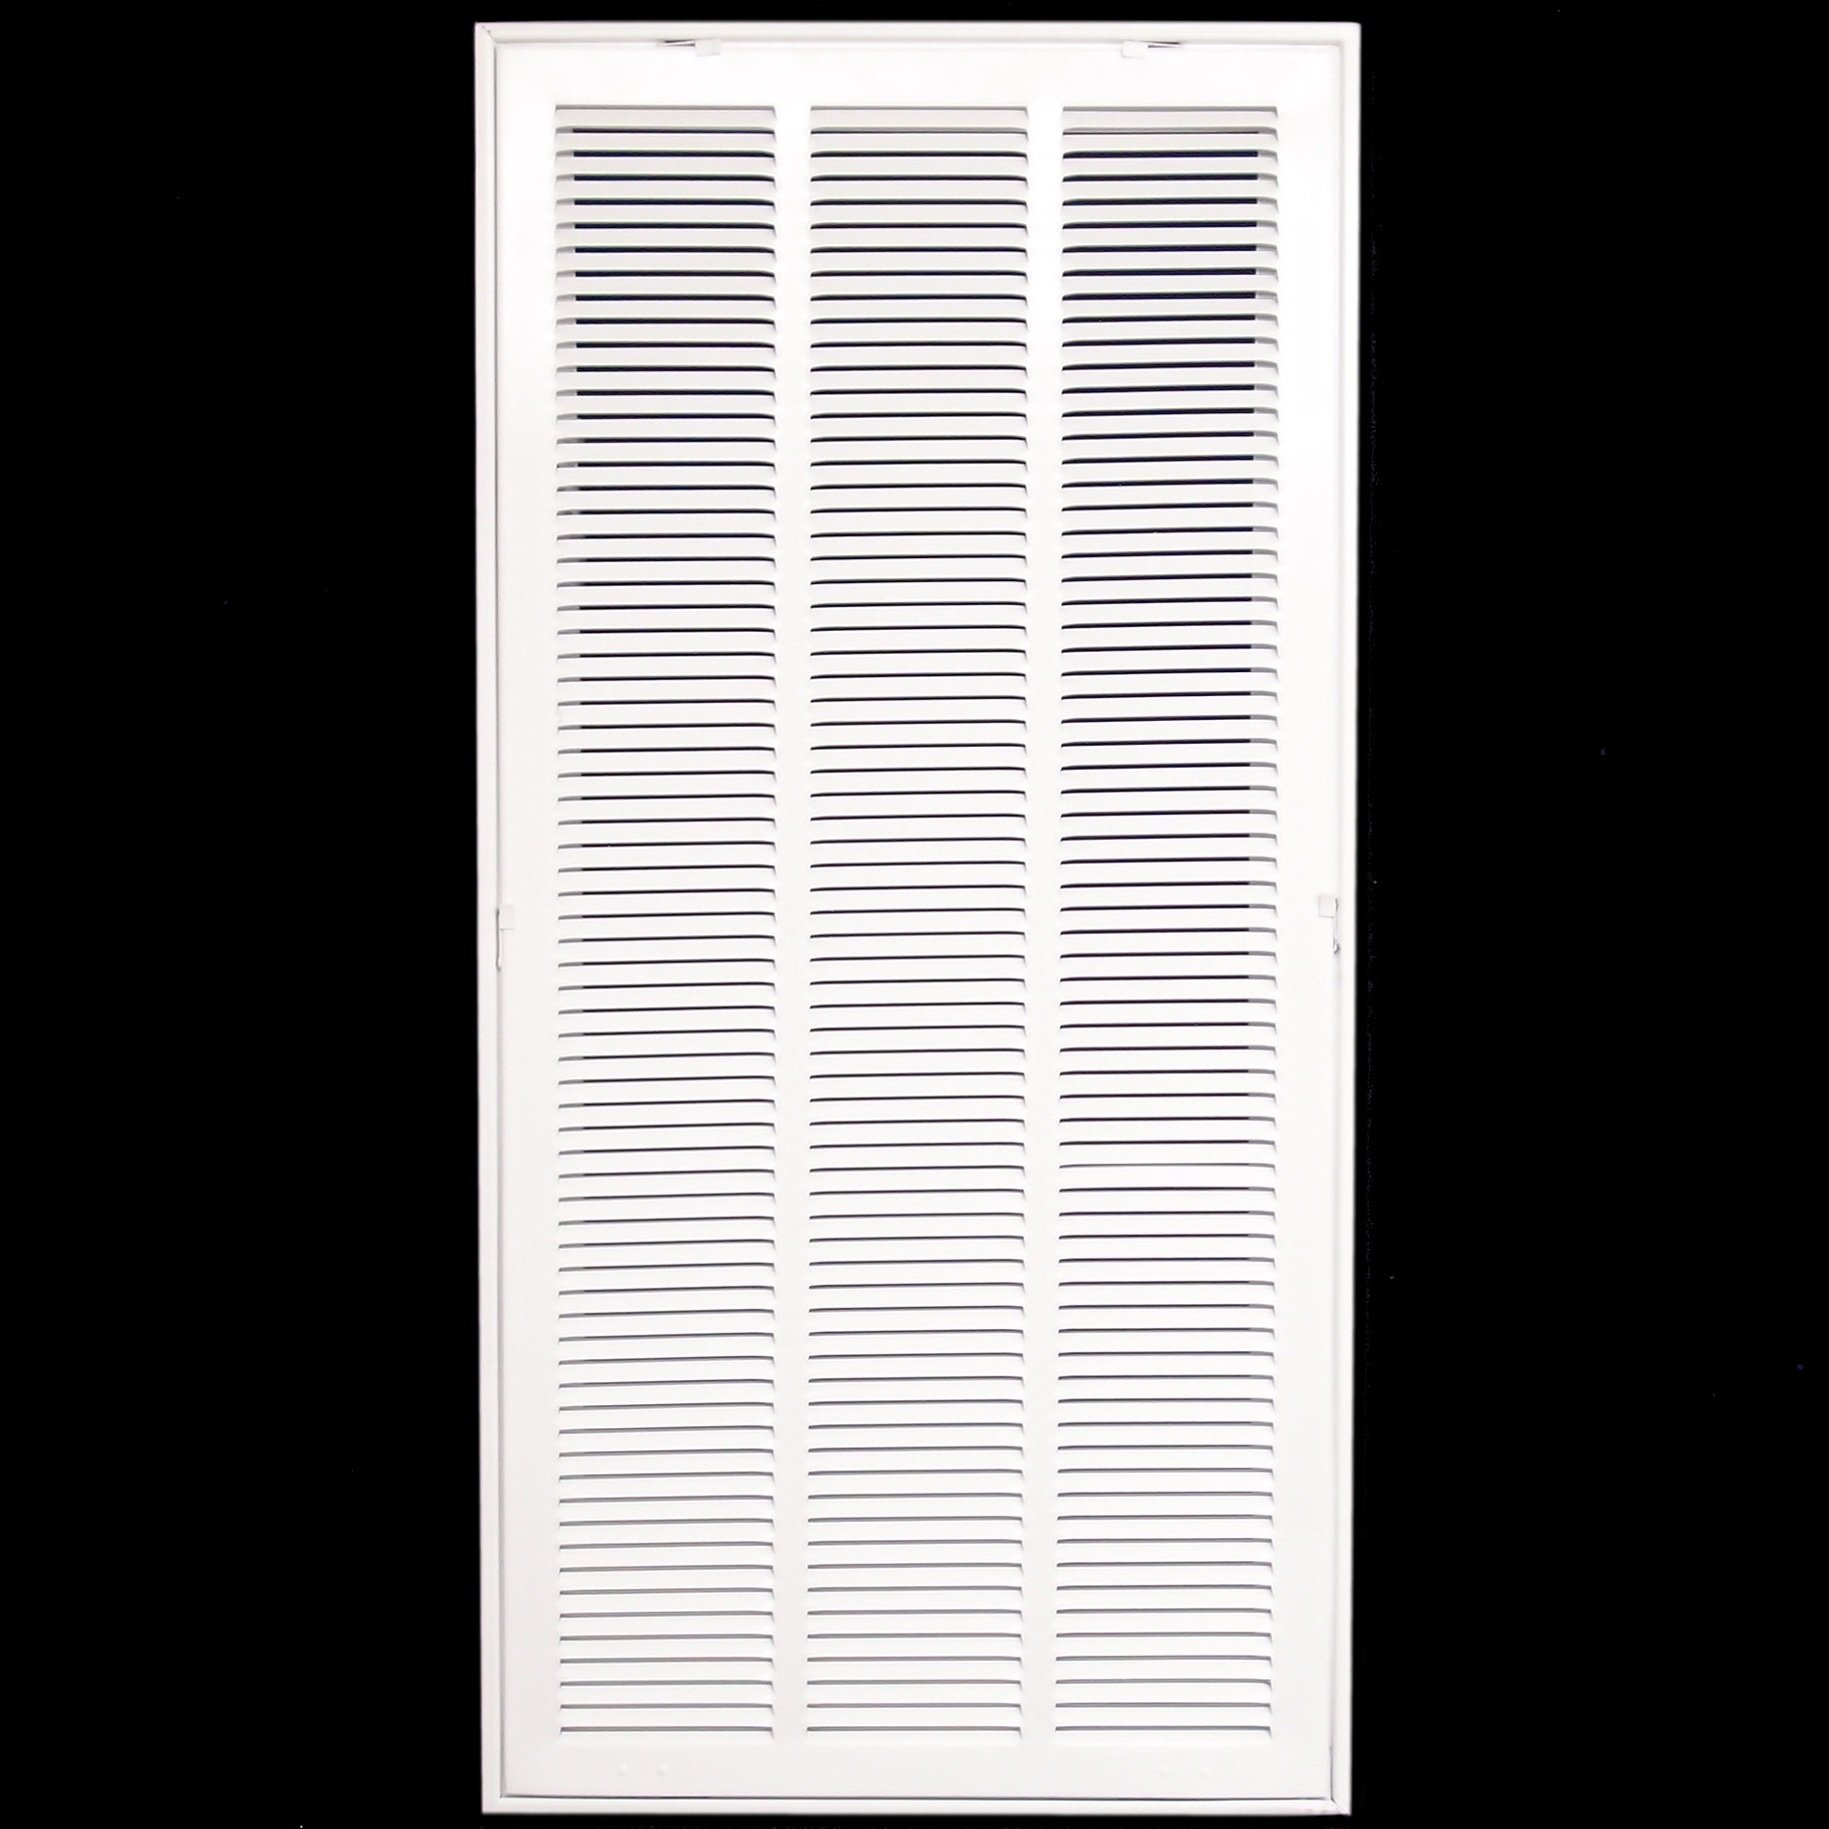 18'' X 36 Steel Return Air Filter Grille for 1'' Filter - Fixed Hinged - ceiling Recommended - HVAC DUCT COVER - Flat Stamped Face - White [Outer Dimensions: 20.5''w X 38.5''h]